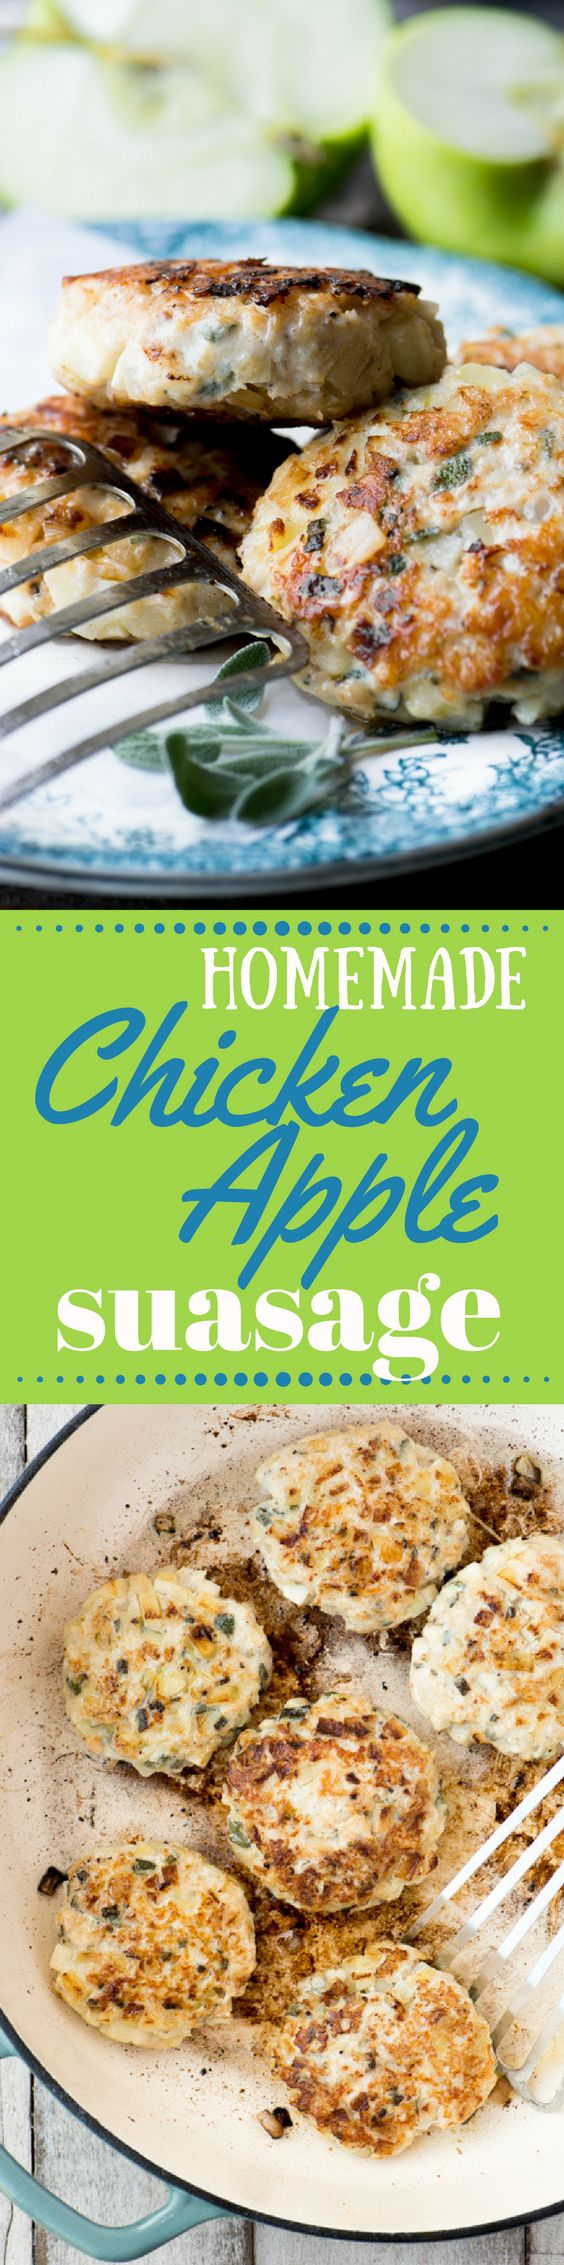 My Homemade Chicken Apple Sausage recipe is an easy way to make your own fabulously fresh sausage at home ~ it freezes beautifully, too, so be sure to make extra so you can enjoy it anytime ~ theviewfromgreatisland.com